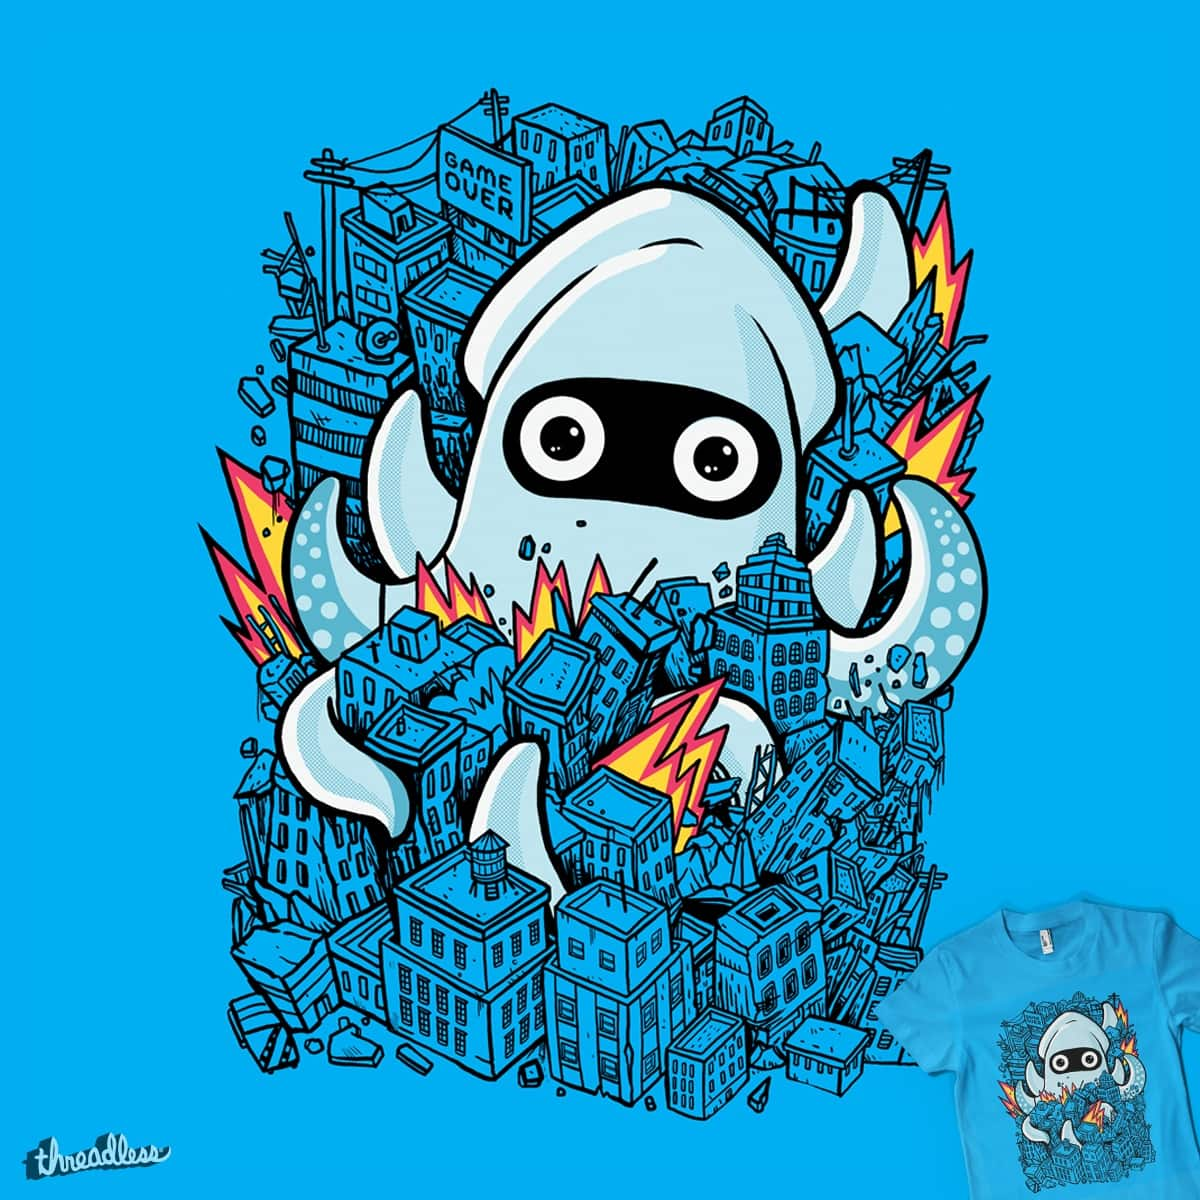 tentical attack by MadKobra on Threadless